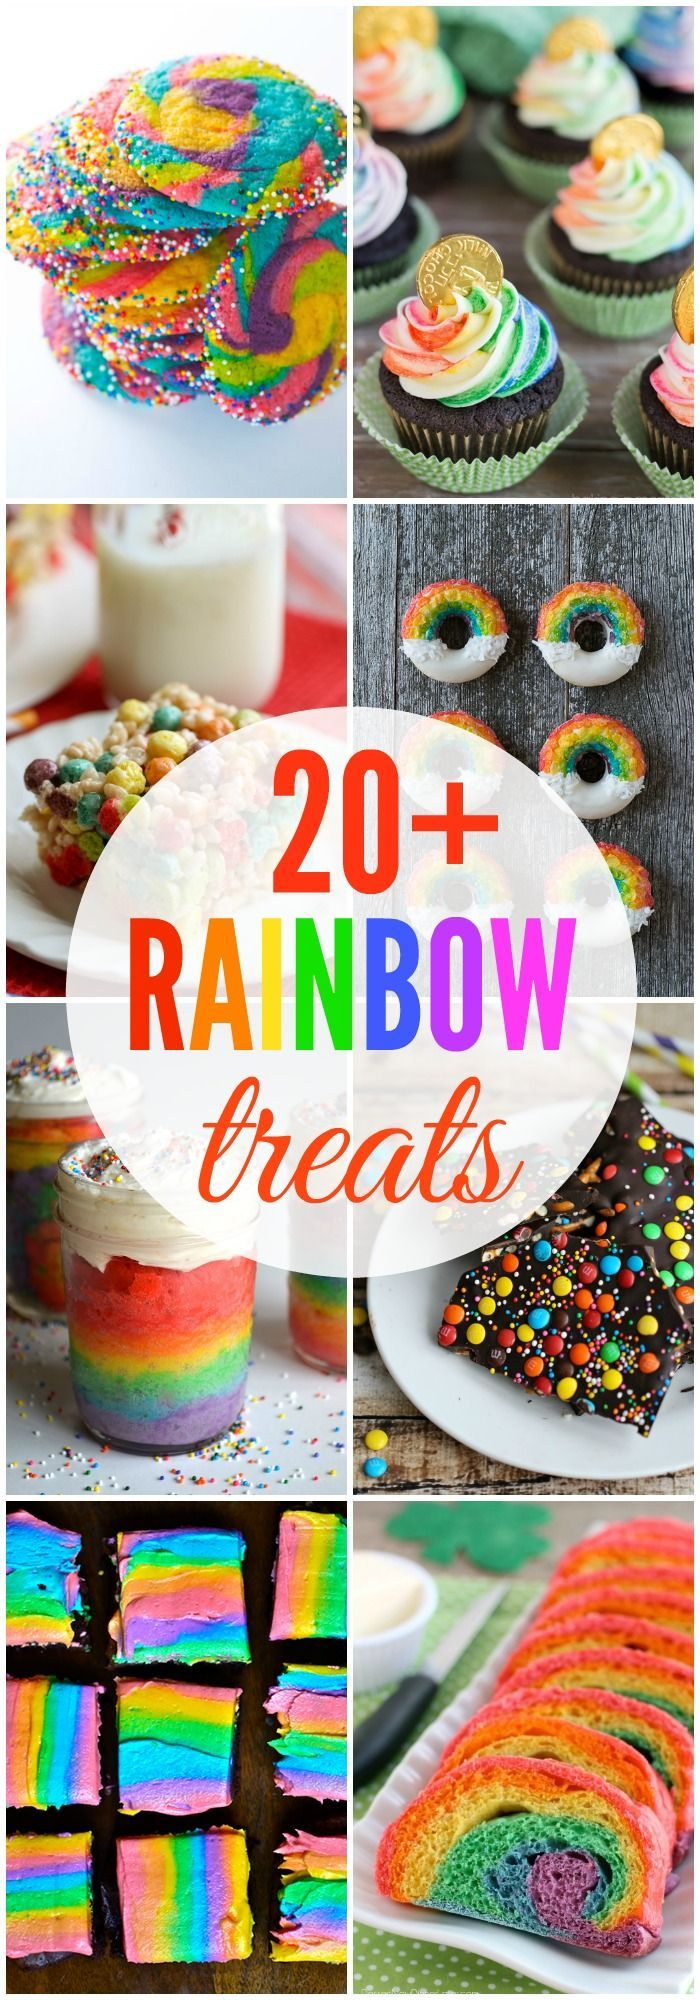 A great and colorful collection of Rainbow treat recipes perfect for parties or even St. Patrick's Day! | Lil' Luna